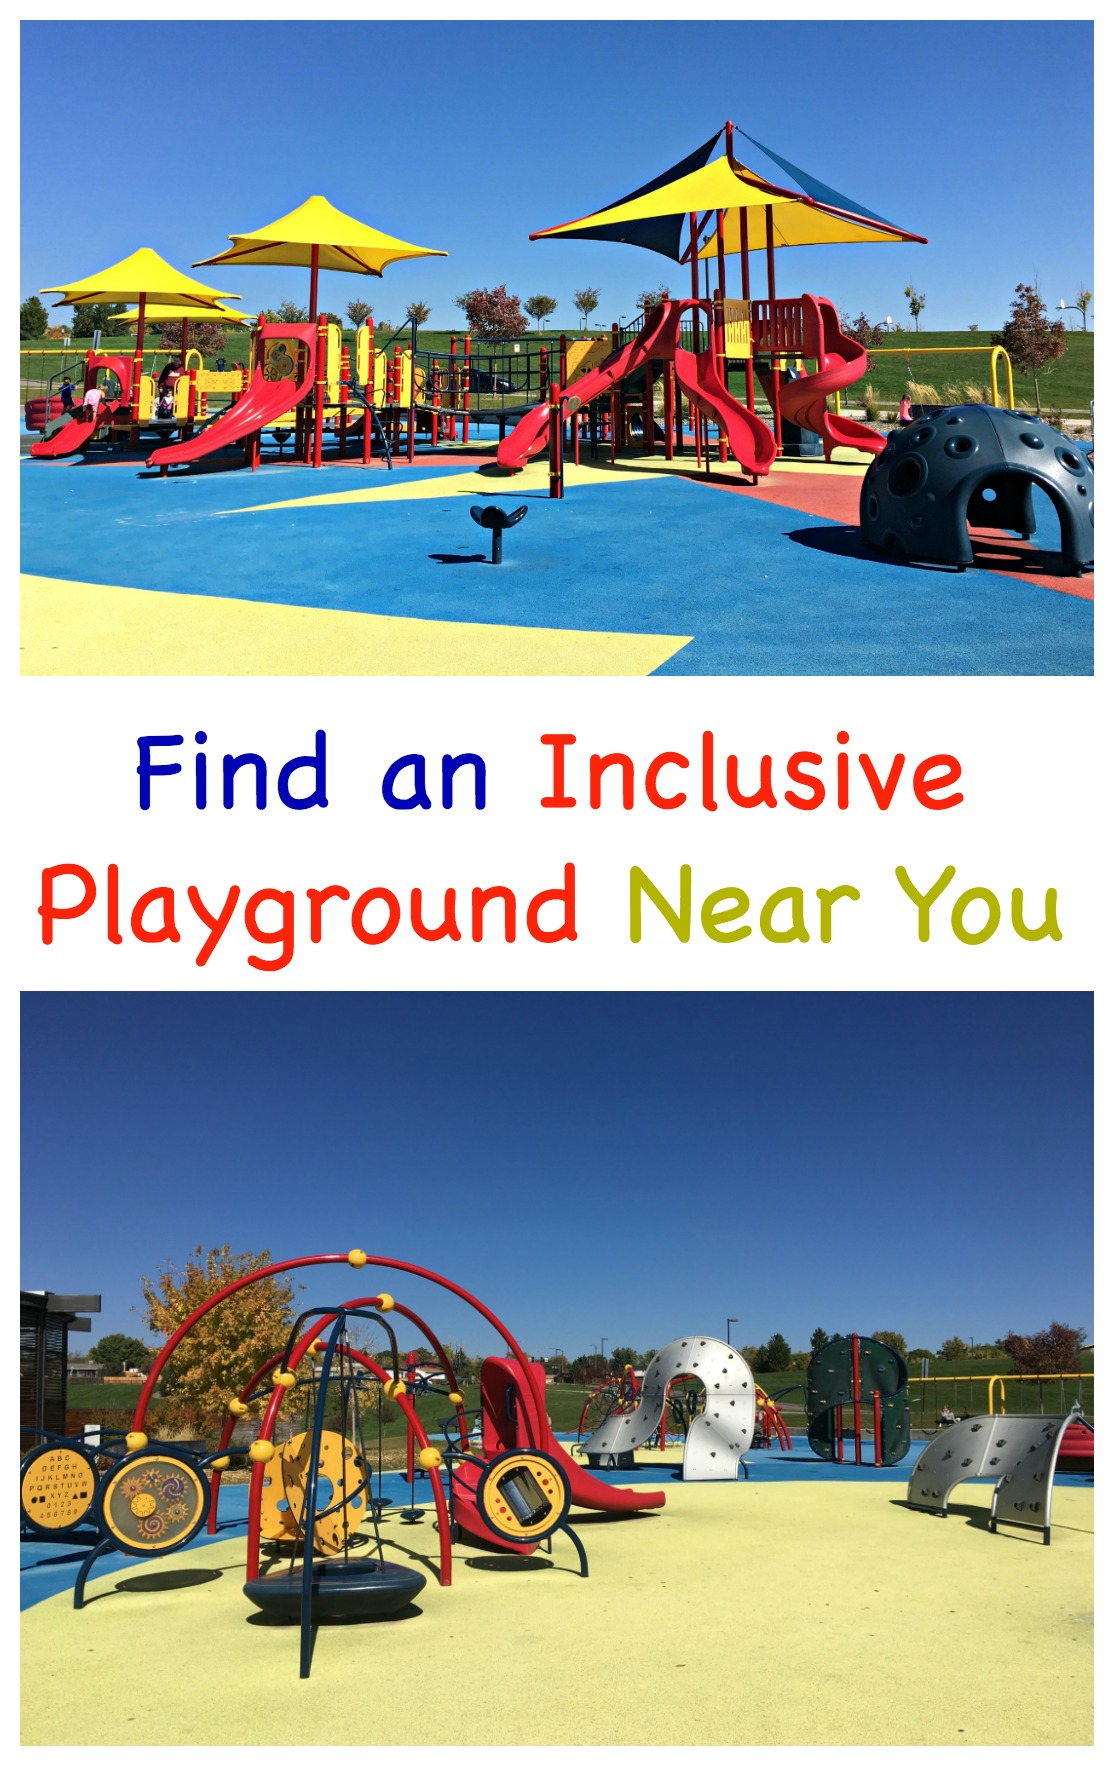 Find an inclusive playground near you.